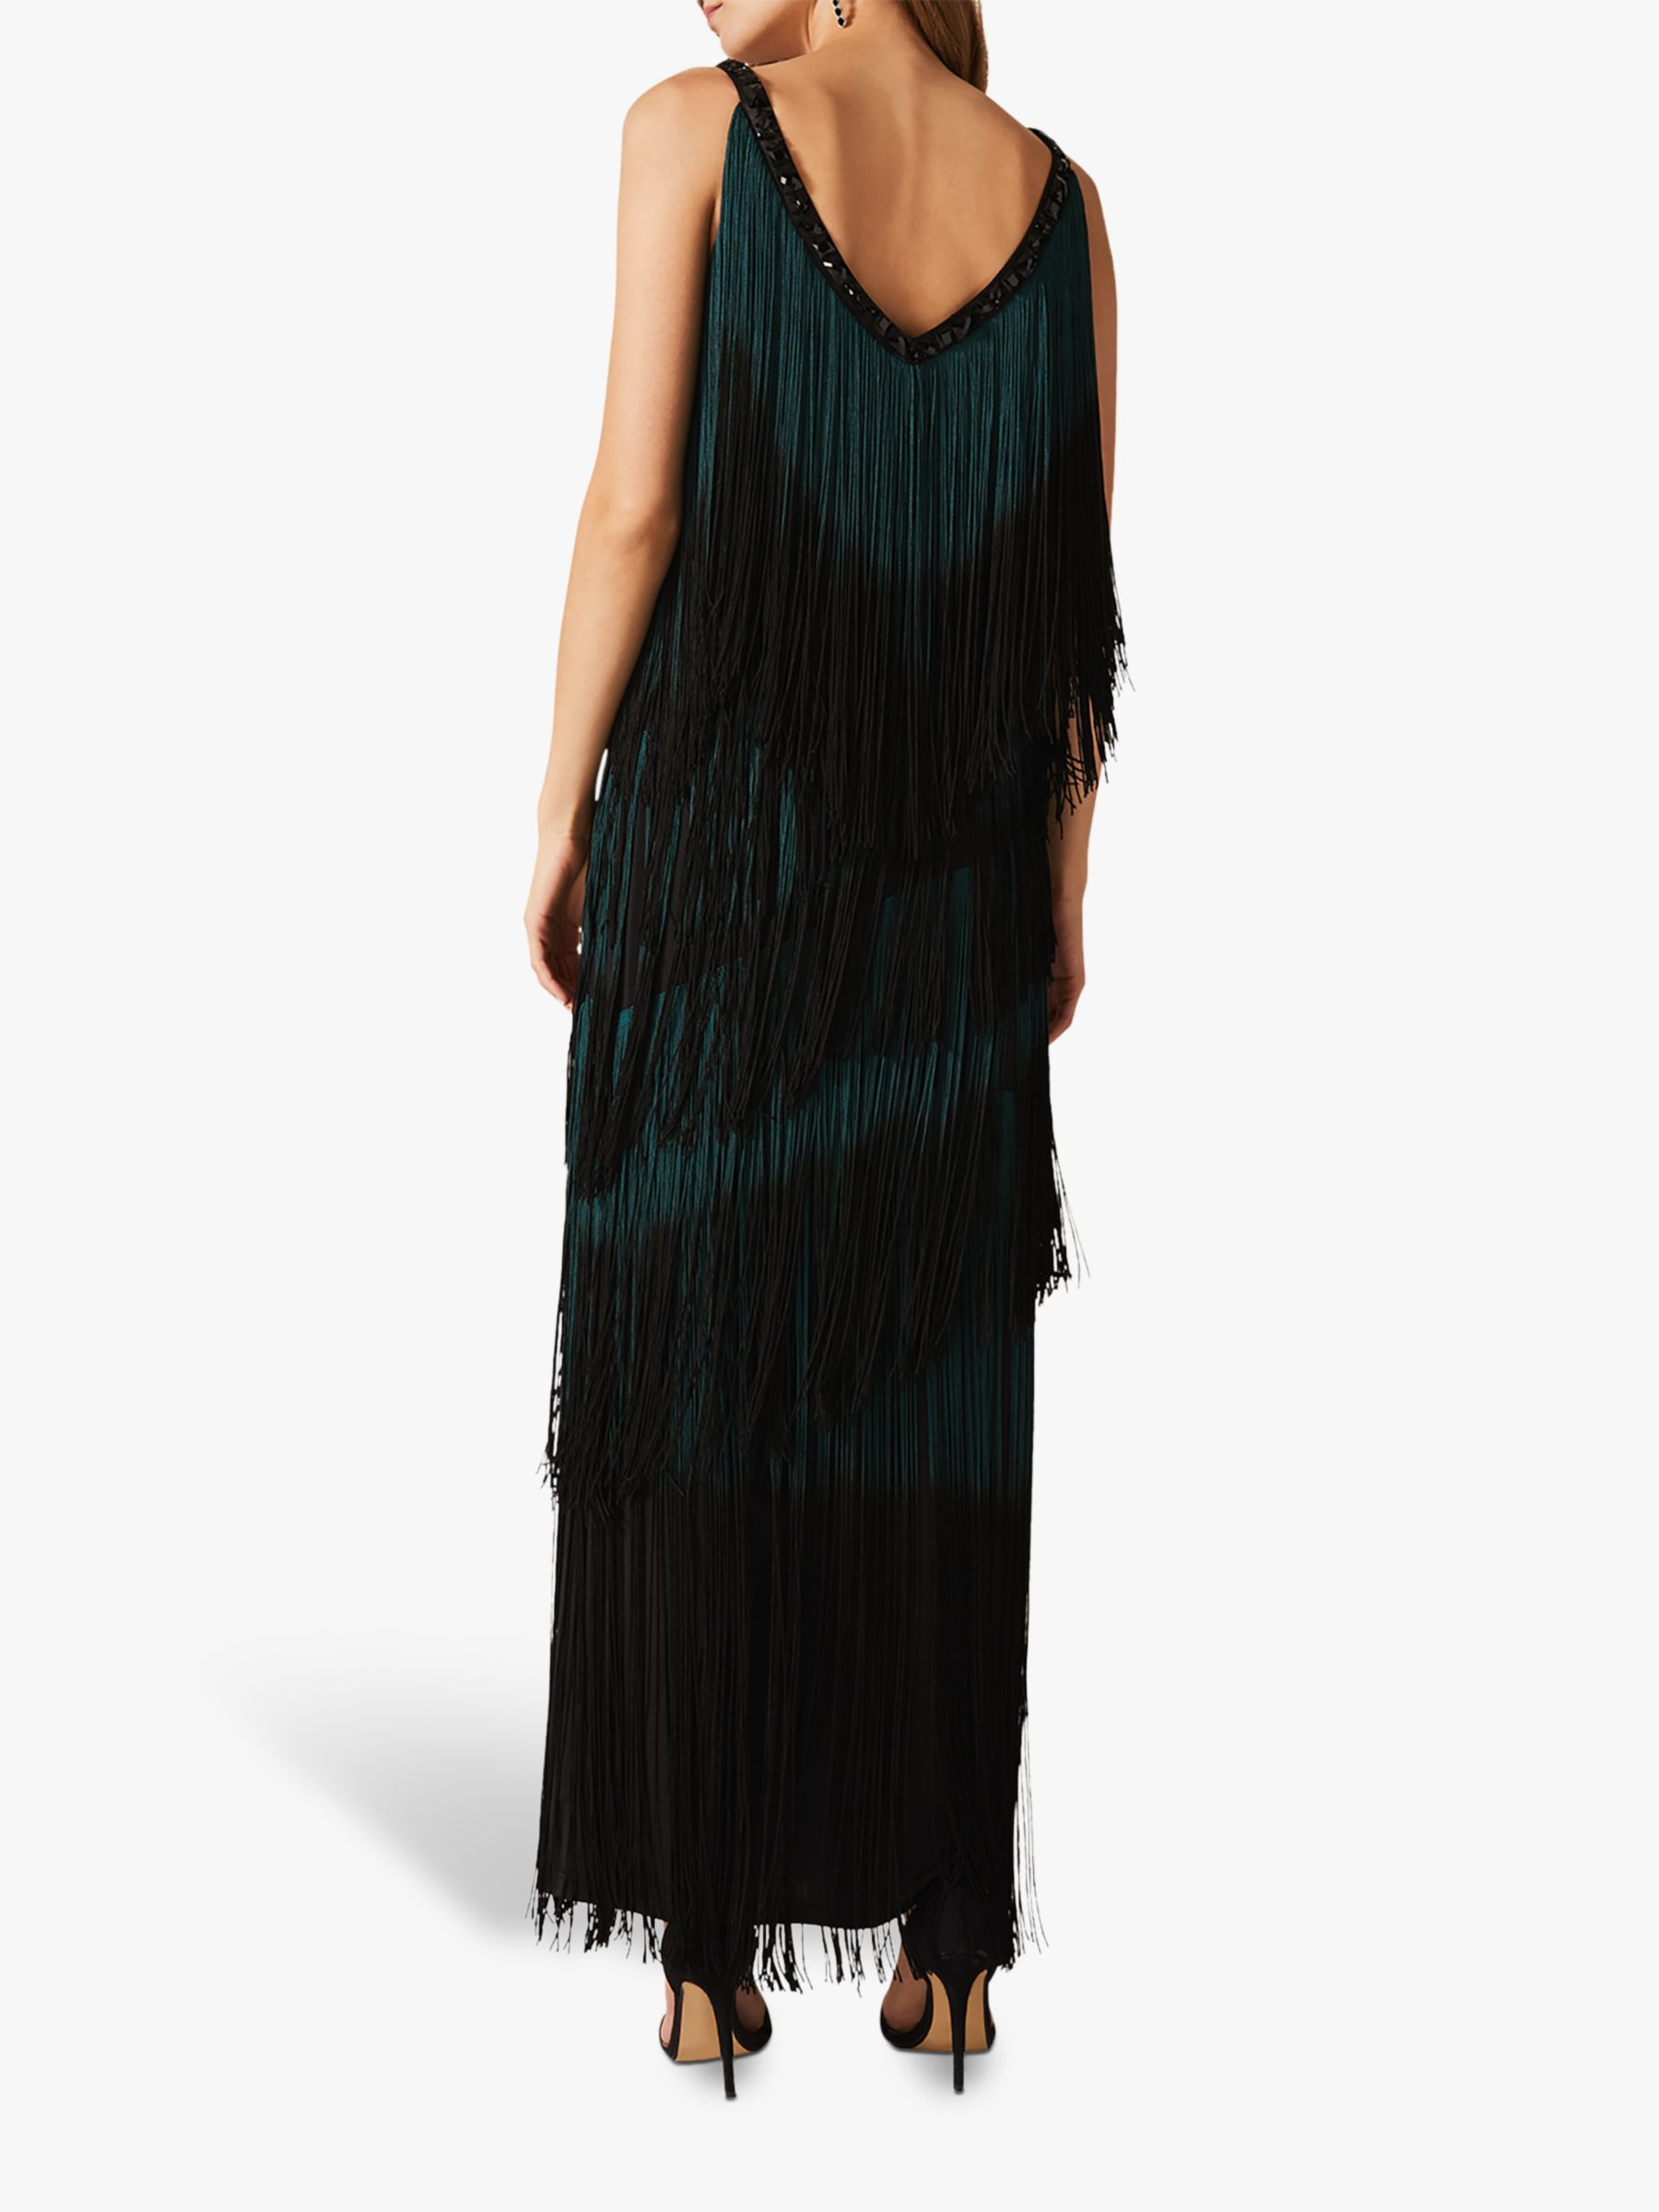 Phase Eight Tina Tassel Maxi Dress, Black/Forest #blackmaxidress